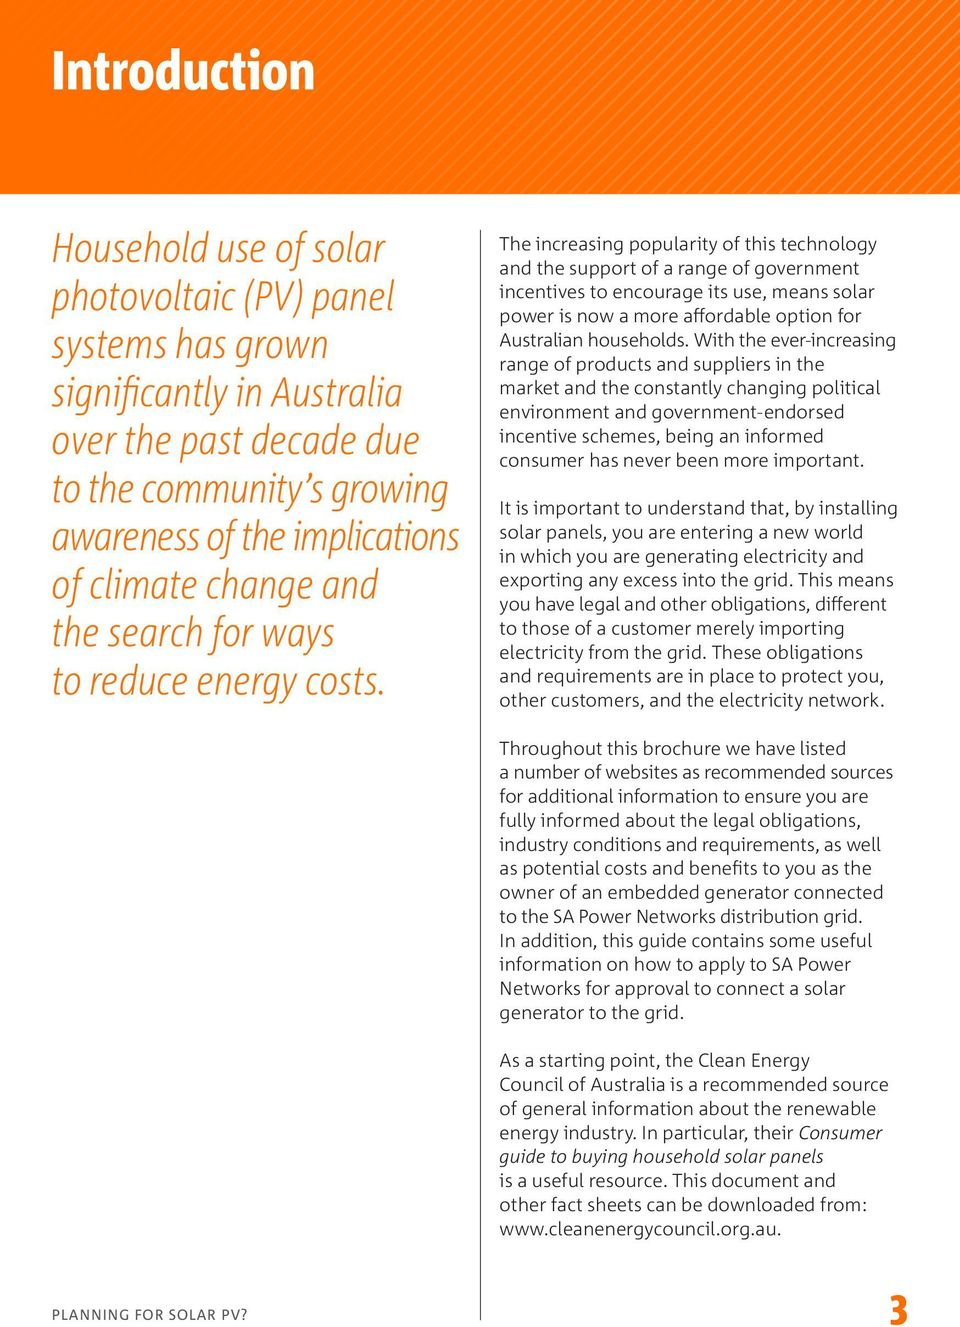 The increasing popularity of this technology and the support of a range of government incentives to encourage its use, means solar power is now a more affordable option for Australian households.